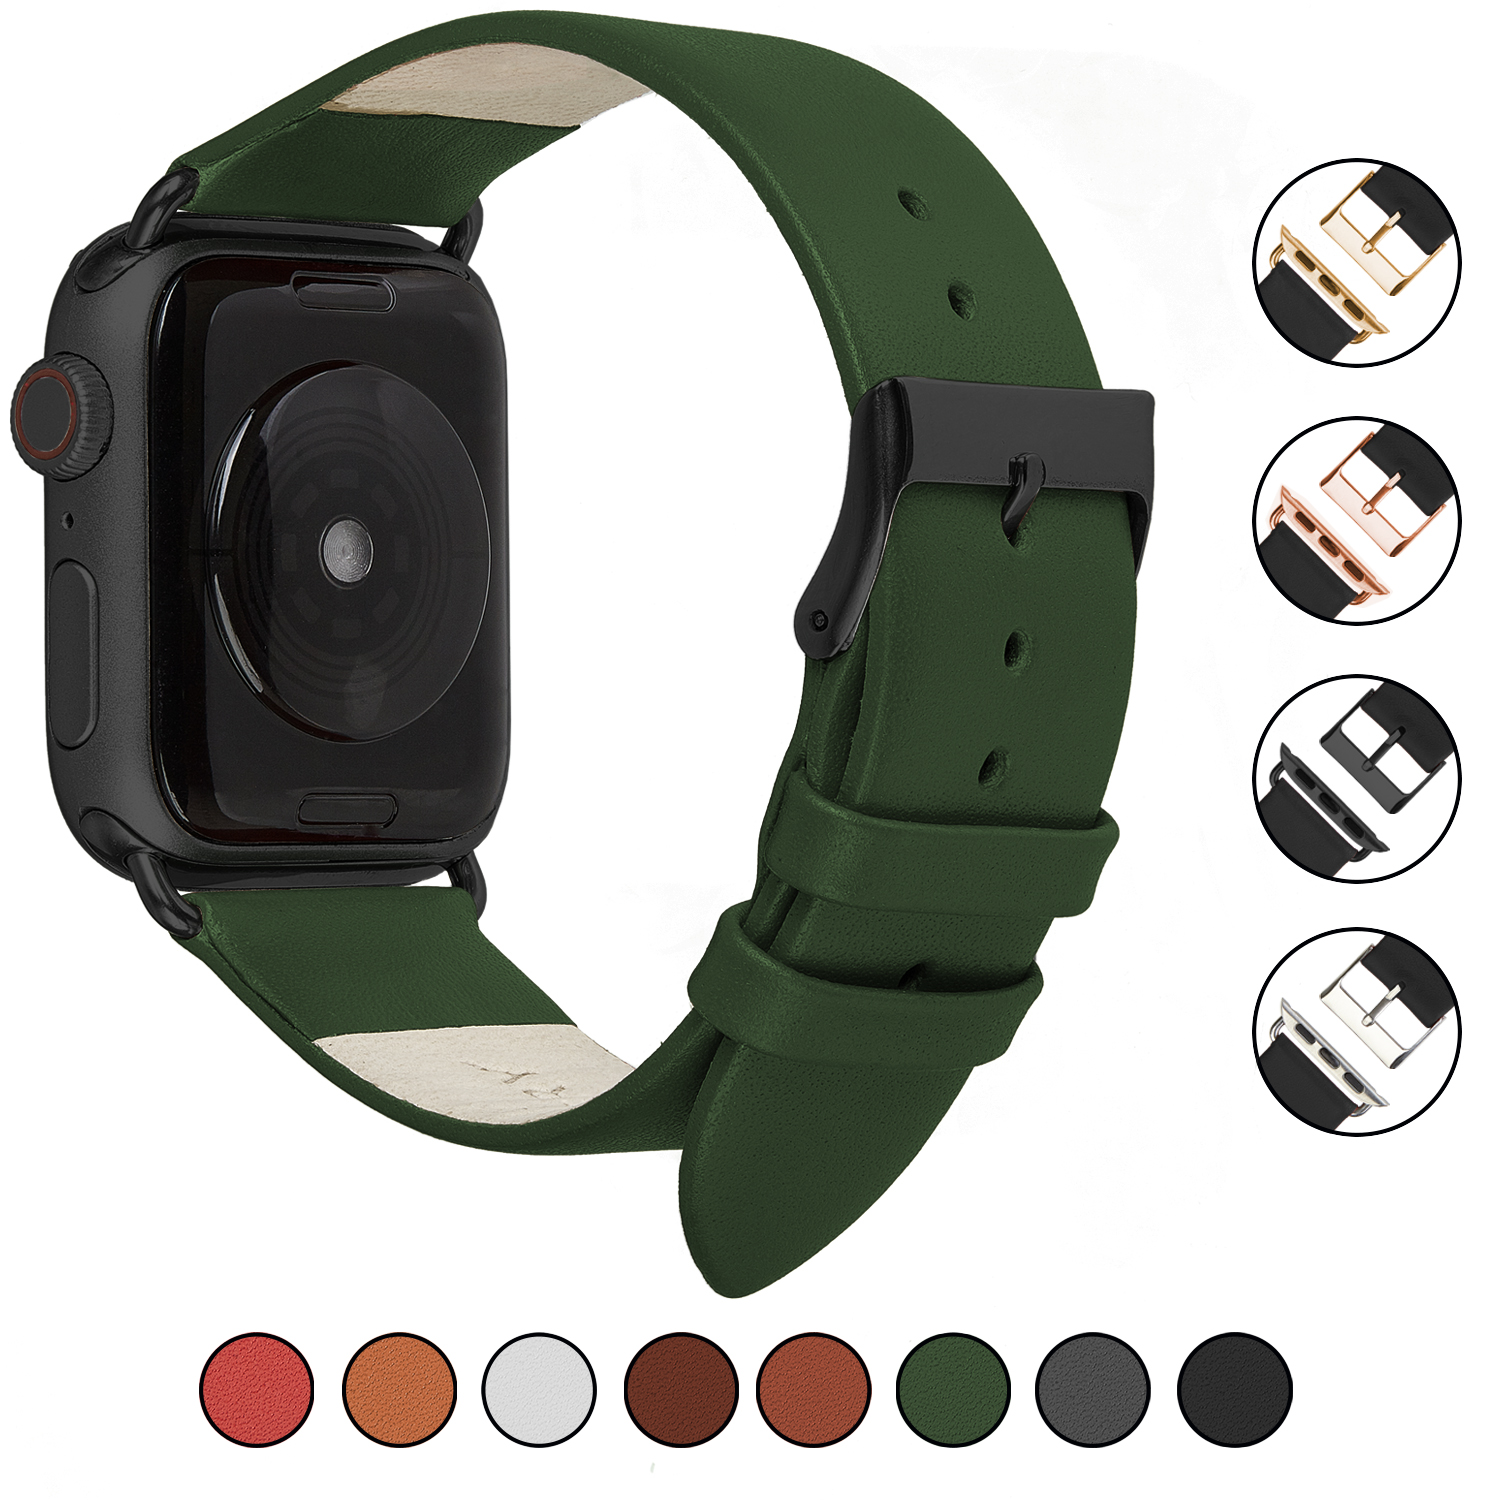 Wildery Leder Armband für Apple Watch Series 1/2/3 und 4/5 in olivgrün